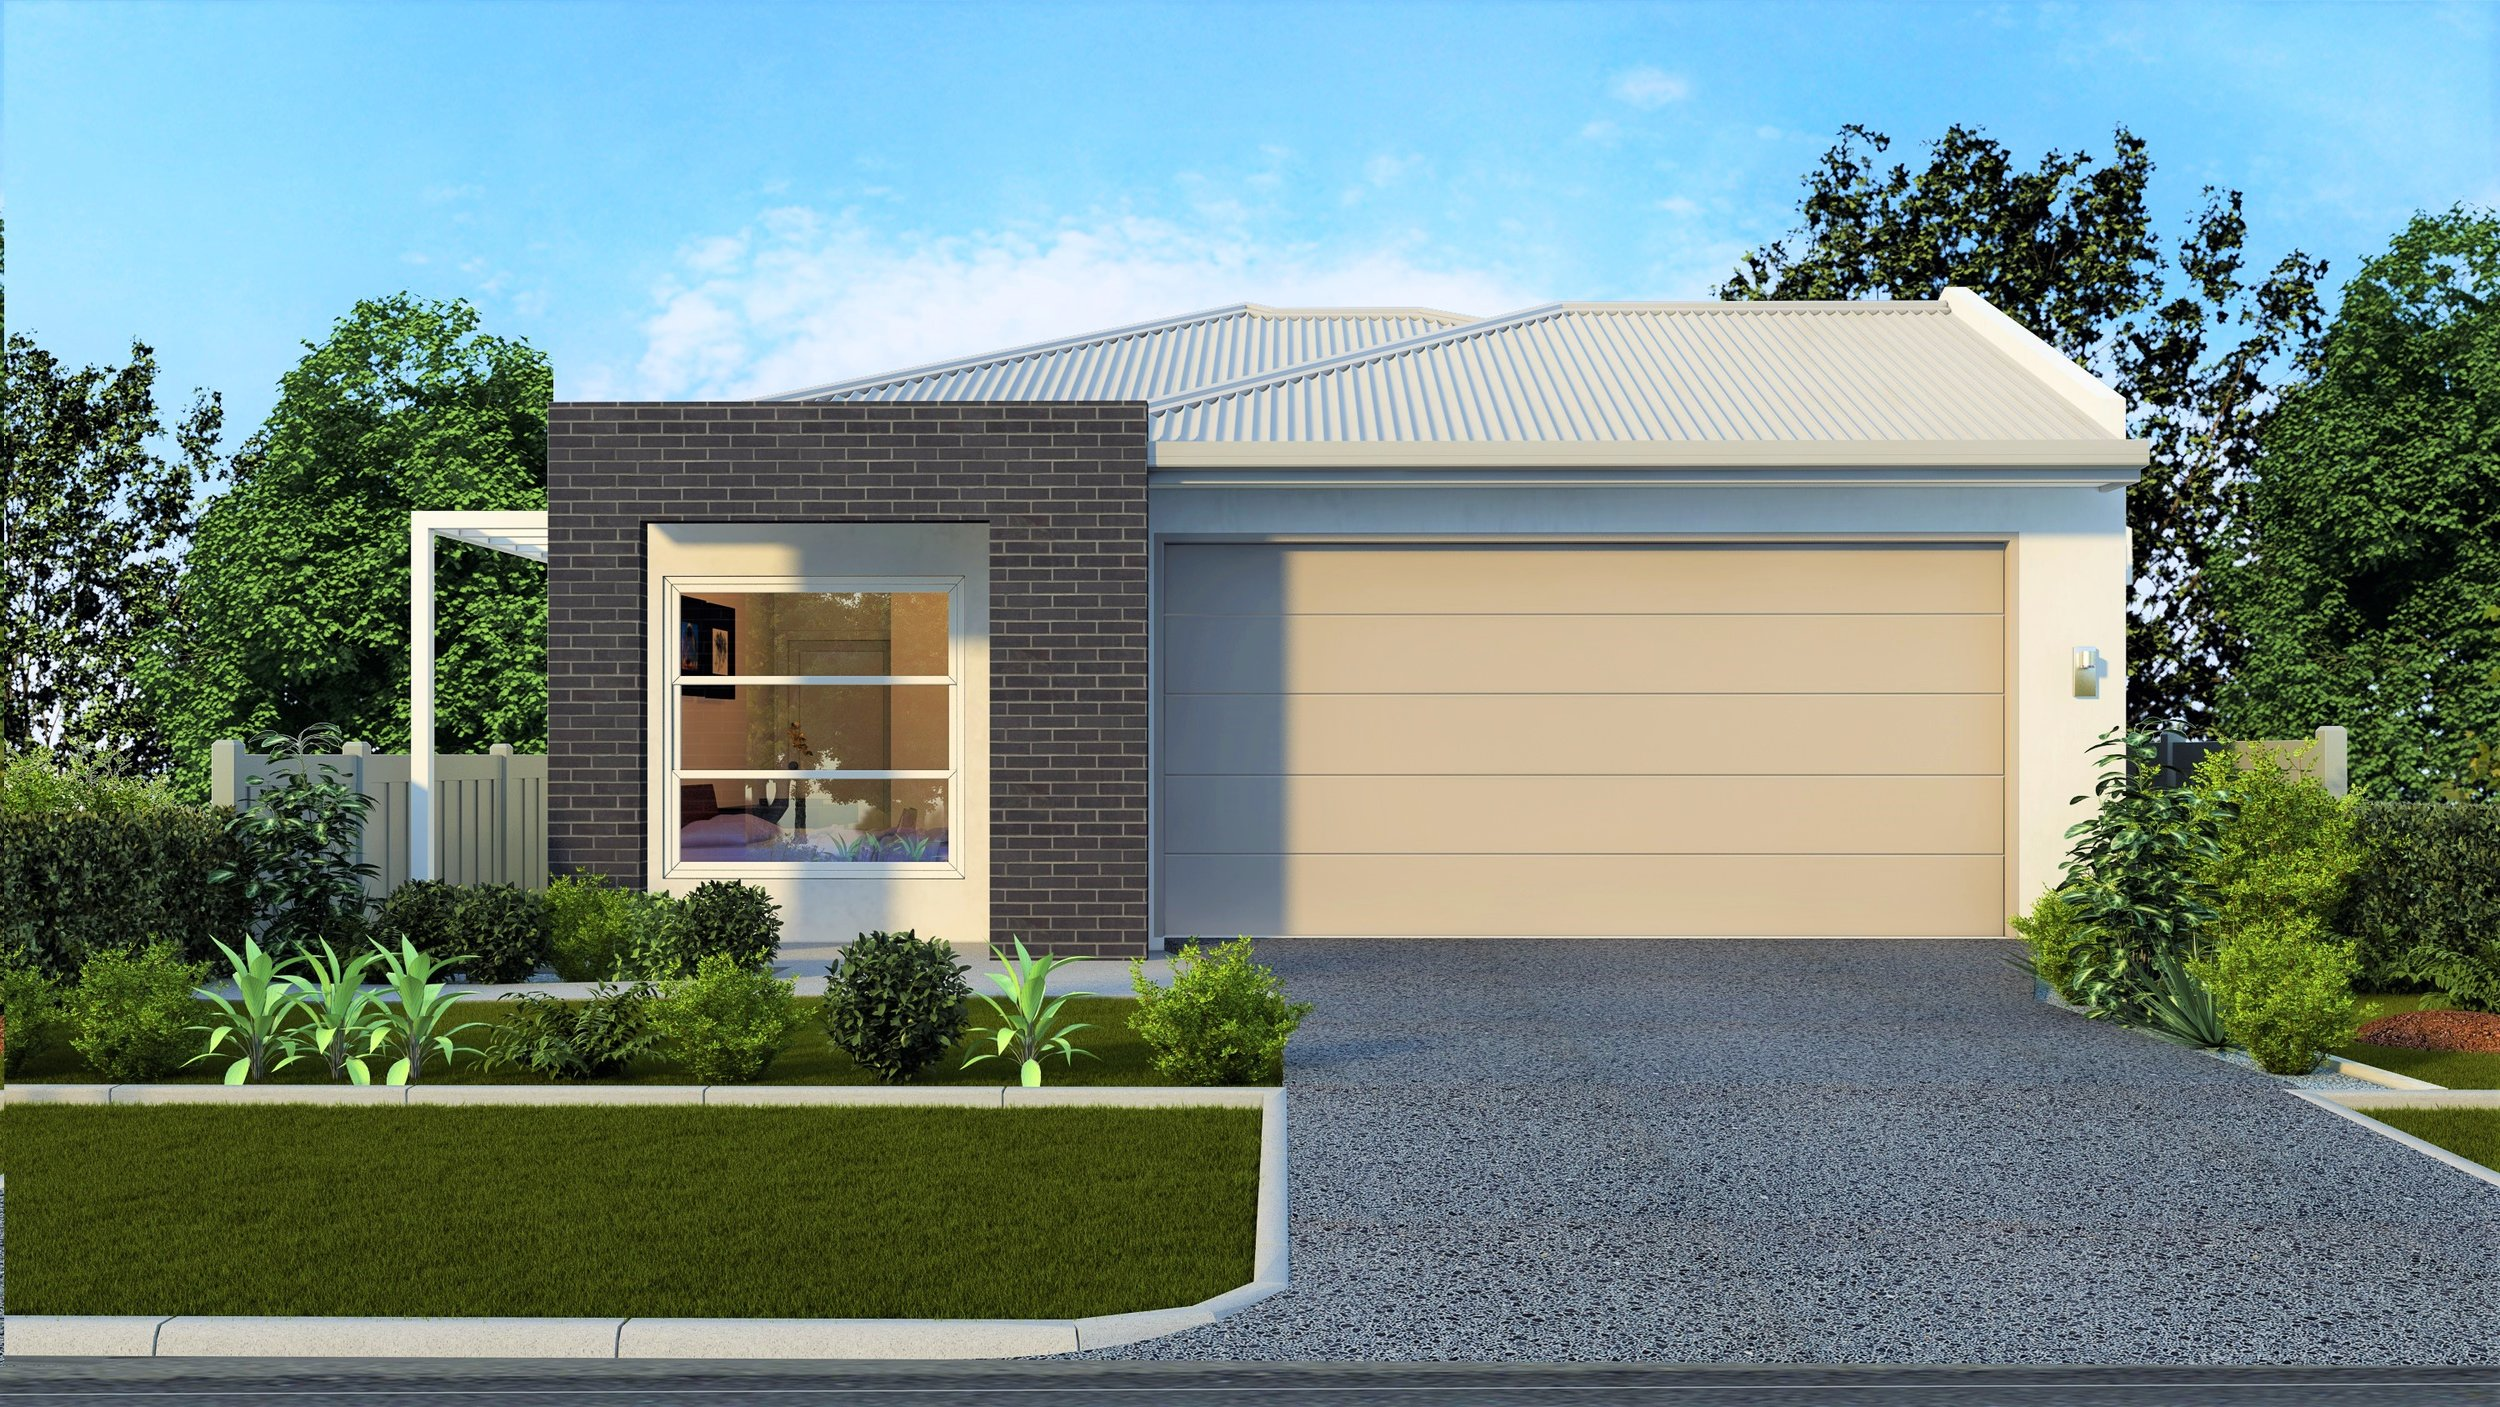 The Hideaway 10 - 3 Bed | 2 Bath | Theatre Room | 2 Car Garage10m Traditional Lots